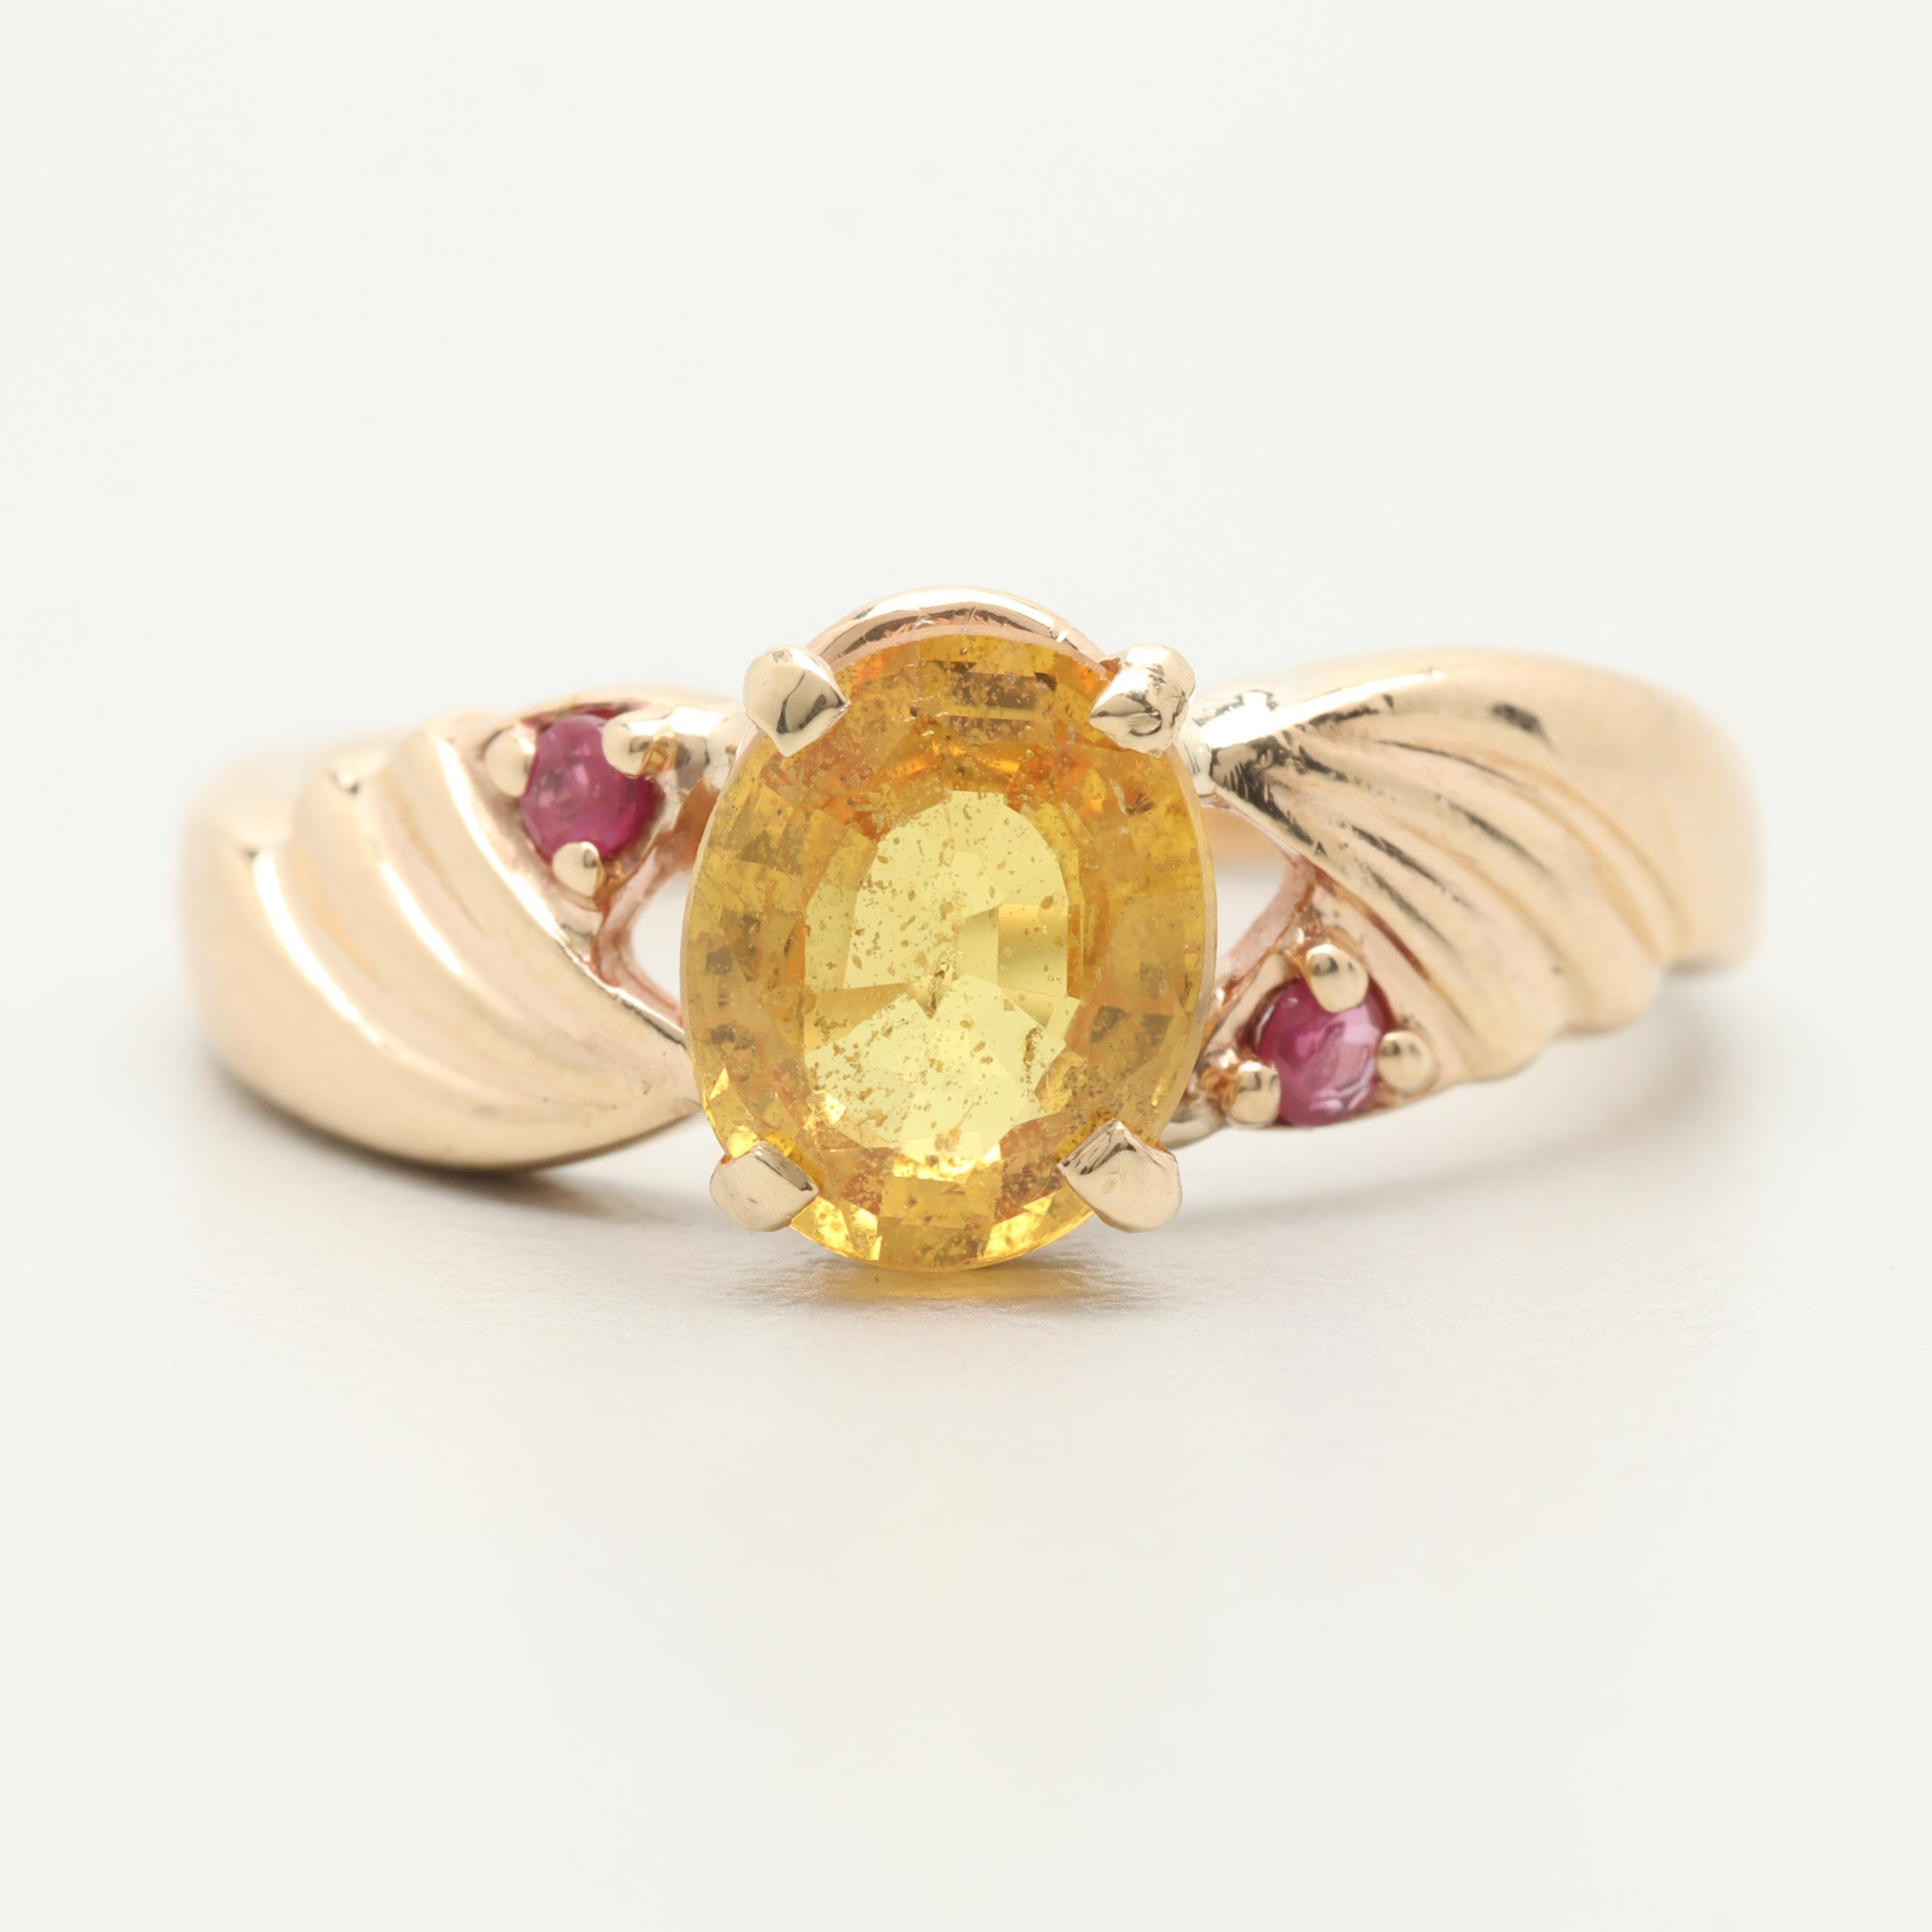 10K Yellow Gold 1.26 CT Yellow Sapphire and Ruby Ring